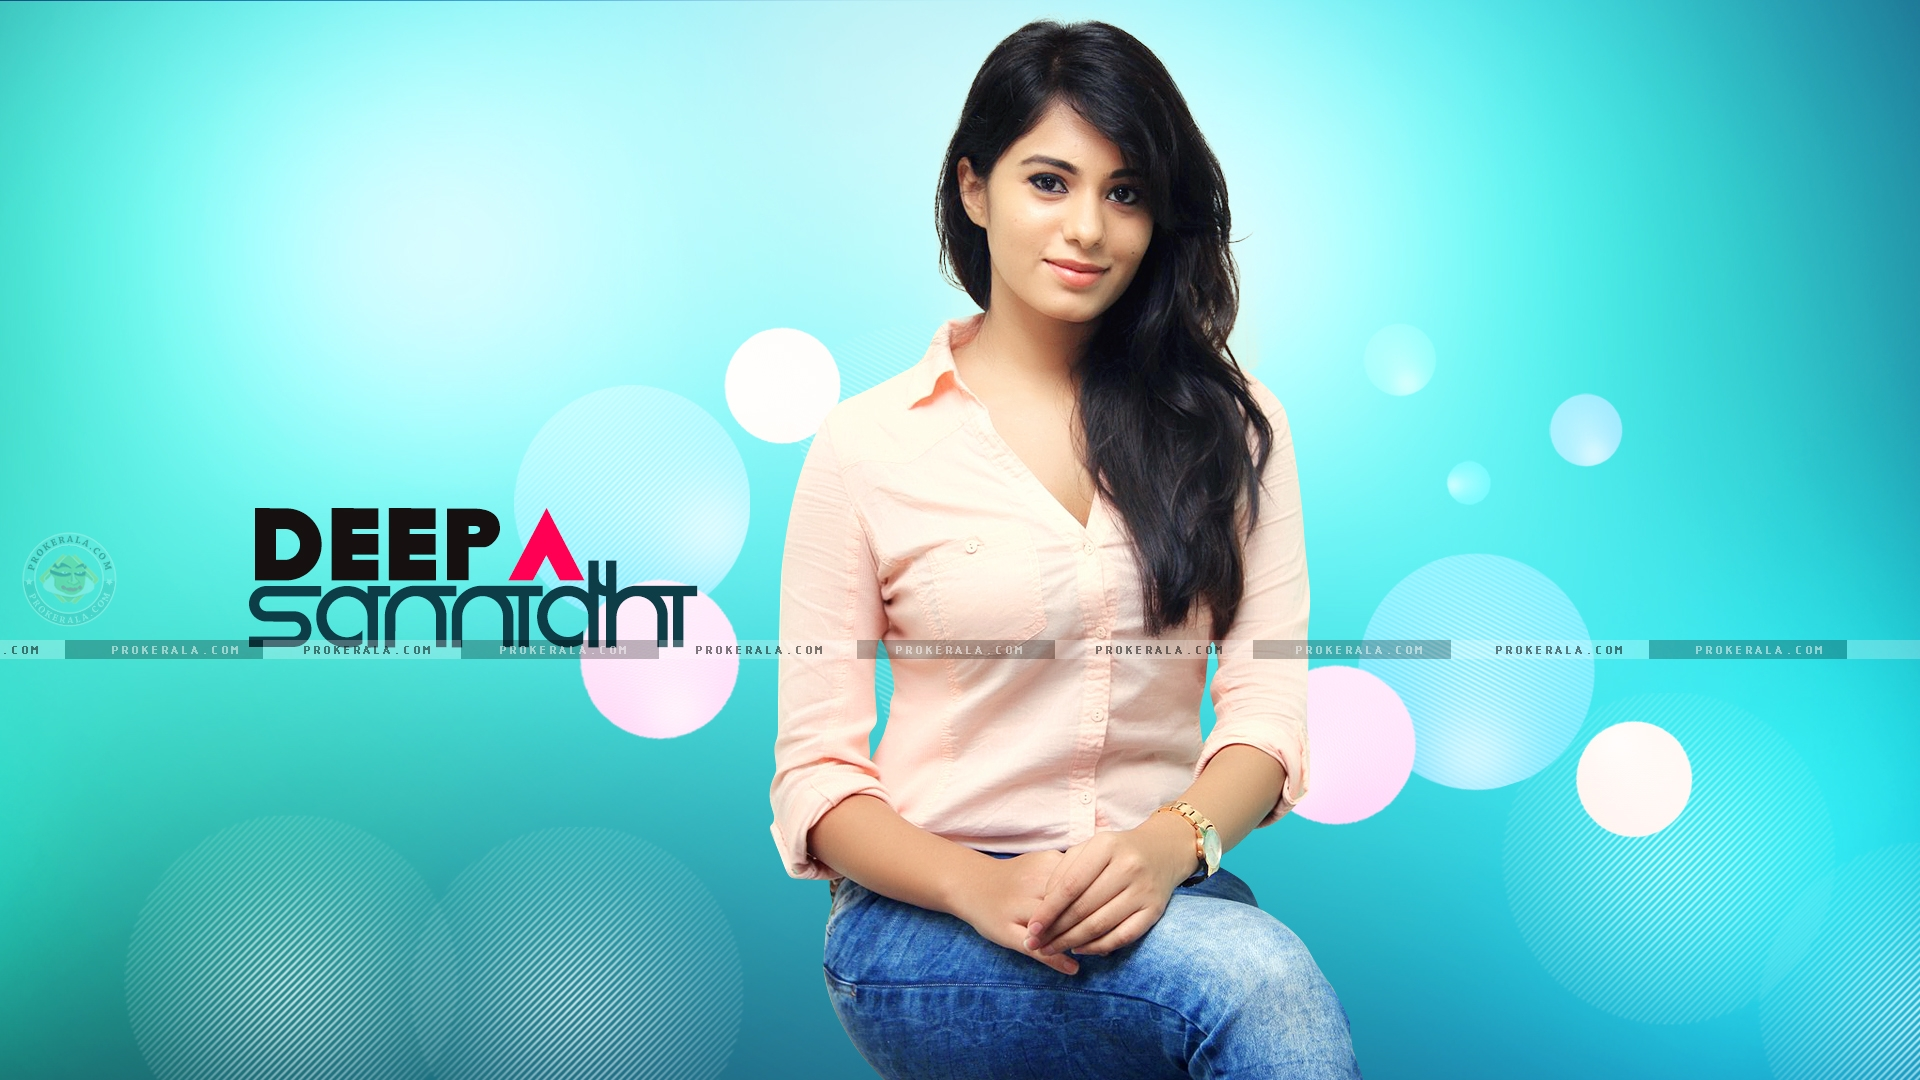 deepa sannidhi hot photos